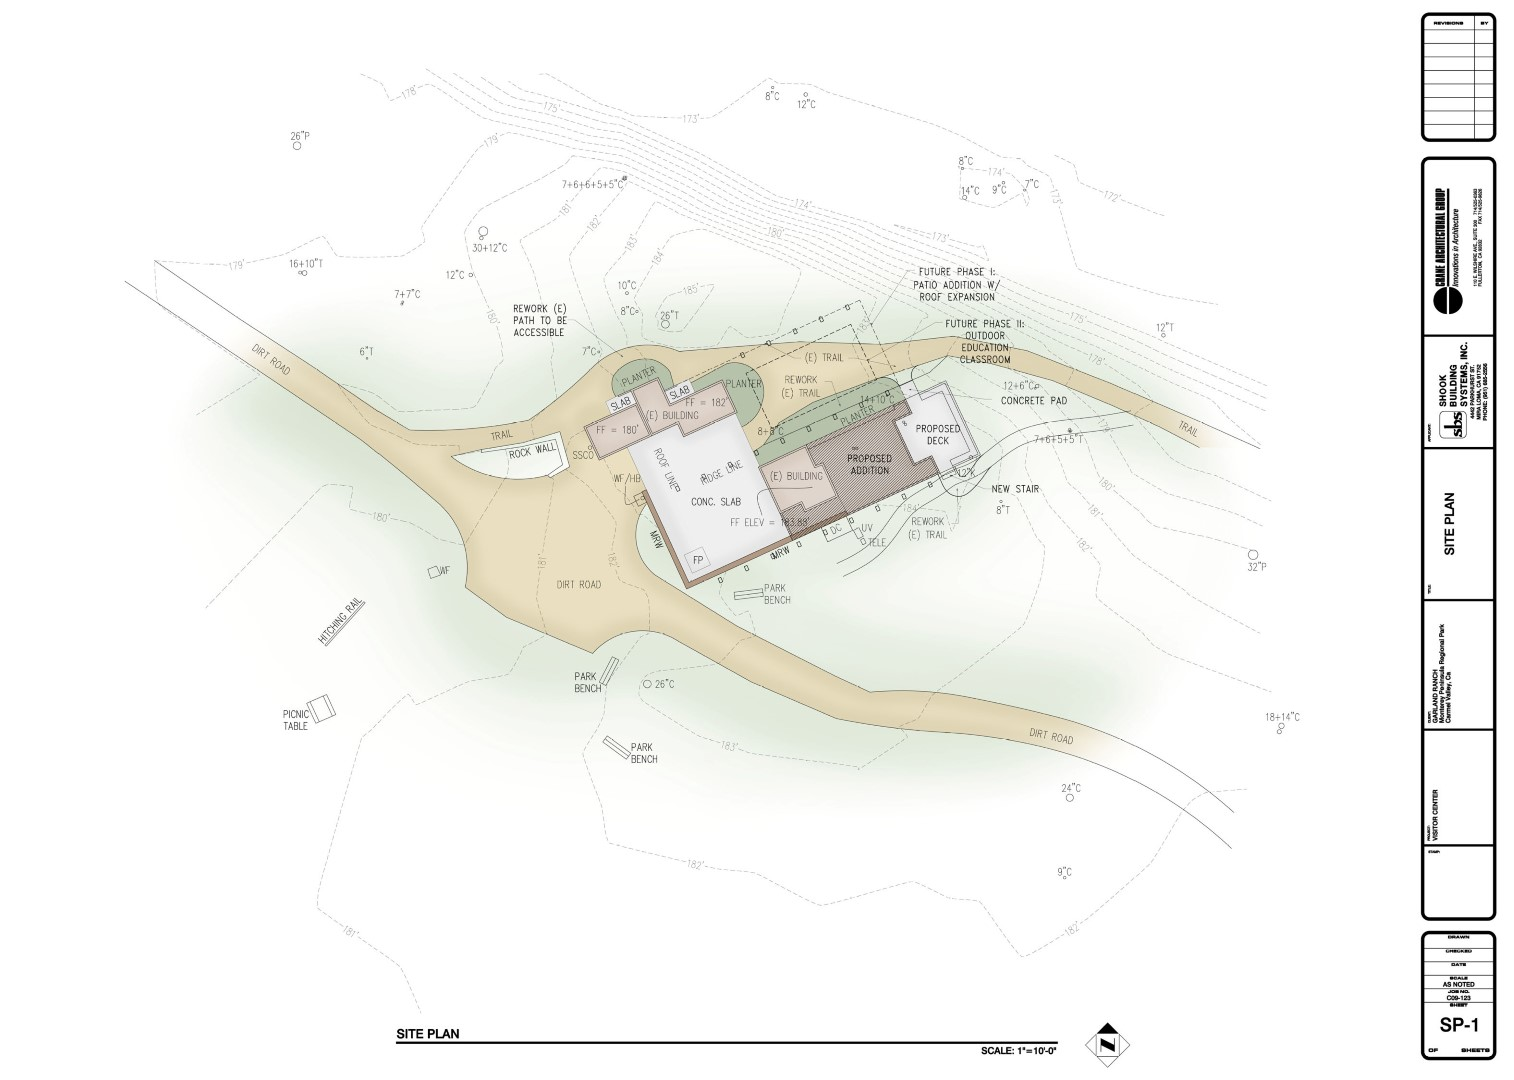 SP-1 Site Plan 1